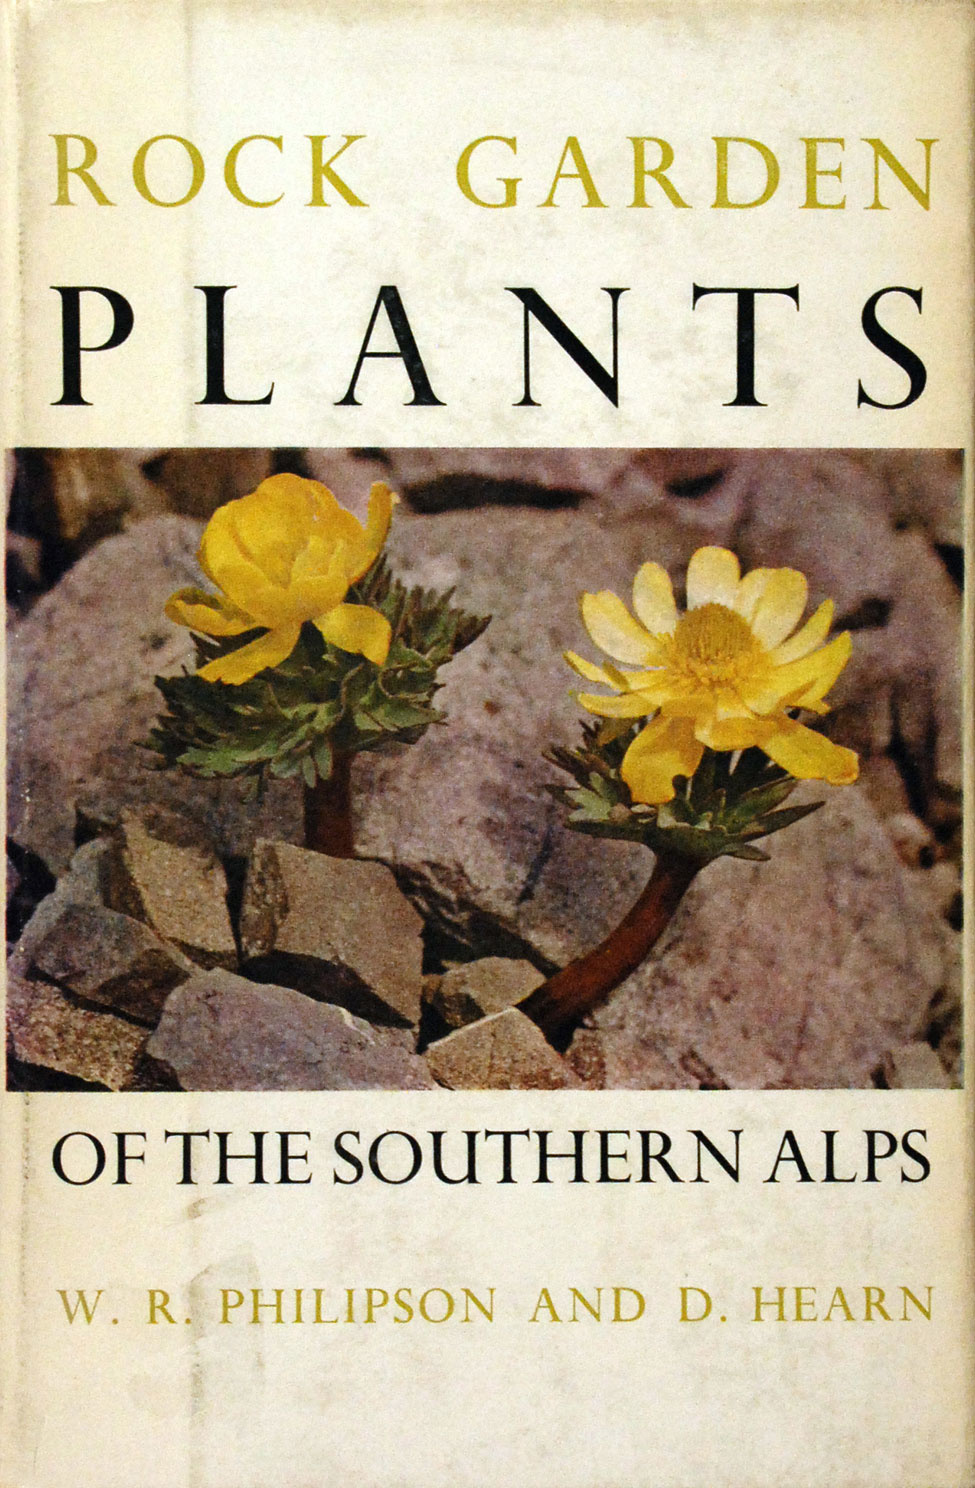 W. R. Philipson and D. Hearn. Rock Garden Plants of the Southern Alps. <i>Christchurch: The Caxton Press, 1962.</i>